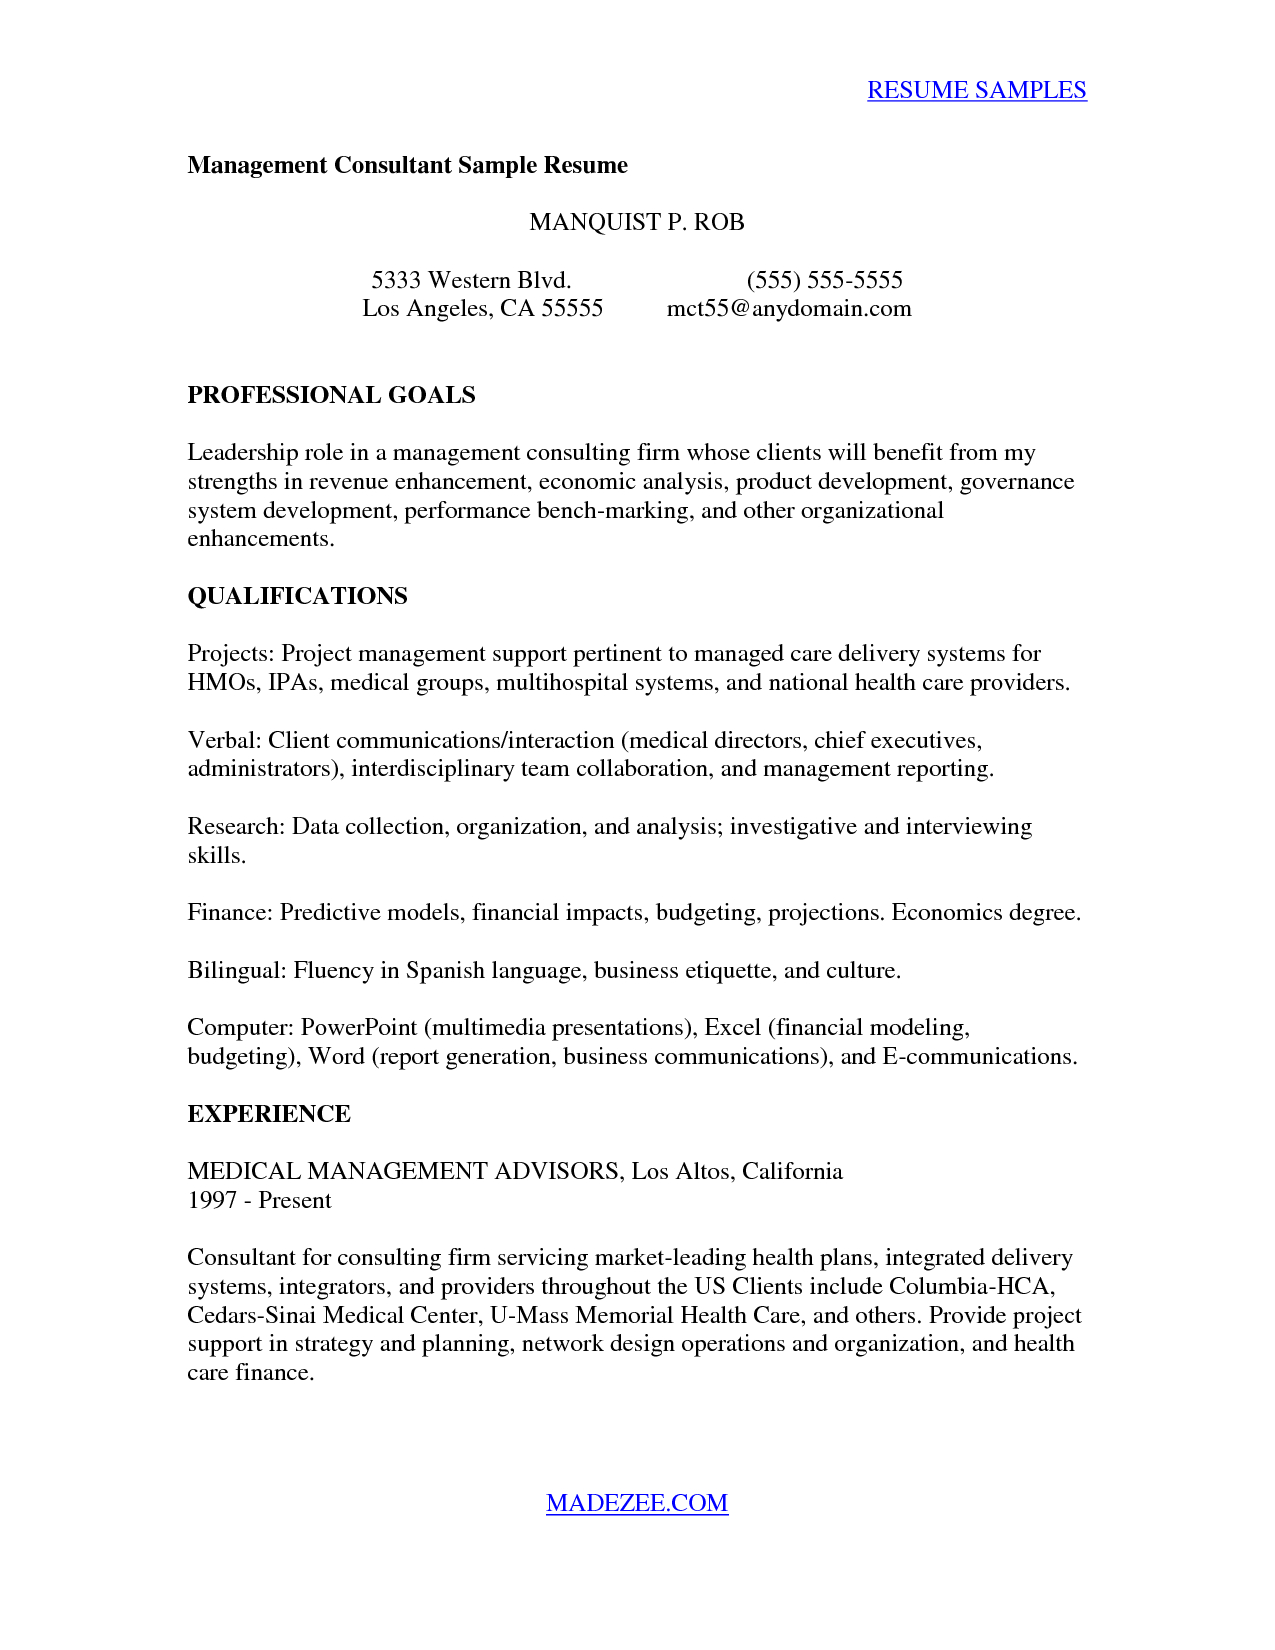 Cv Cover Letter Template - Consultant Sample Management Consulting Cover Letter Management